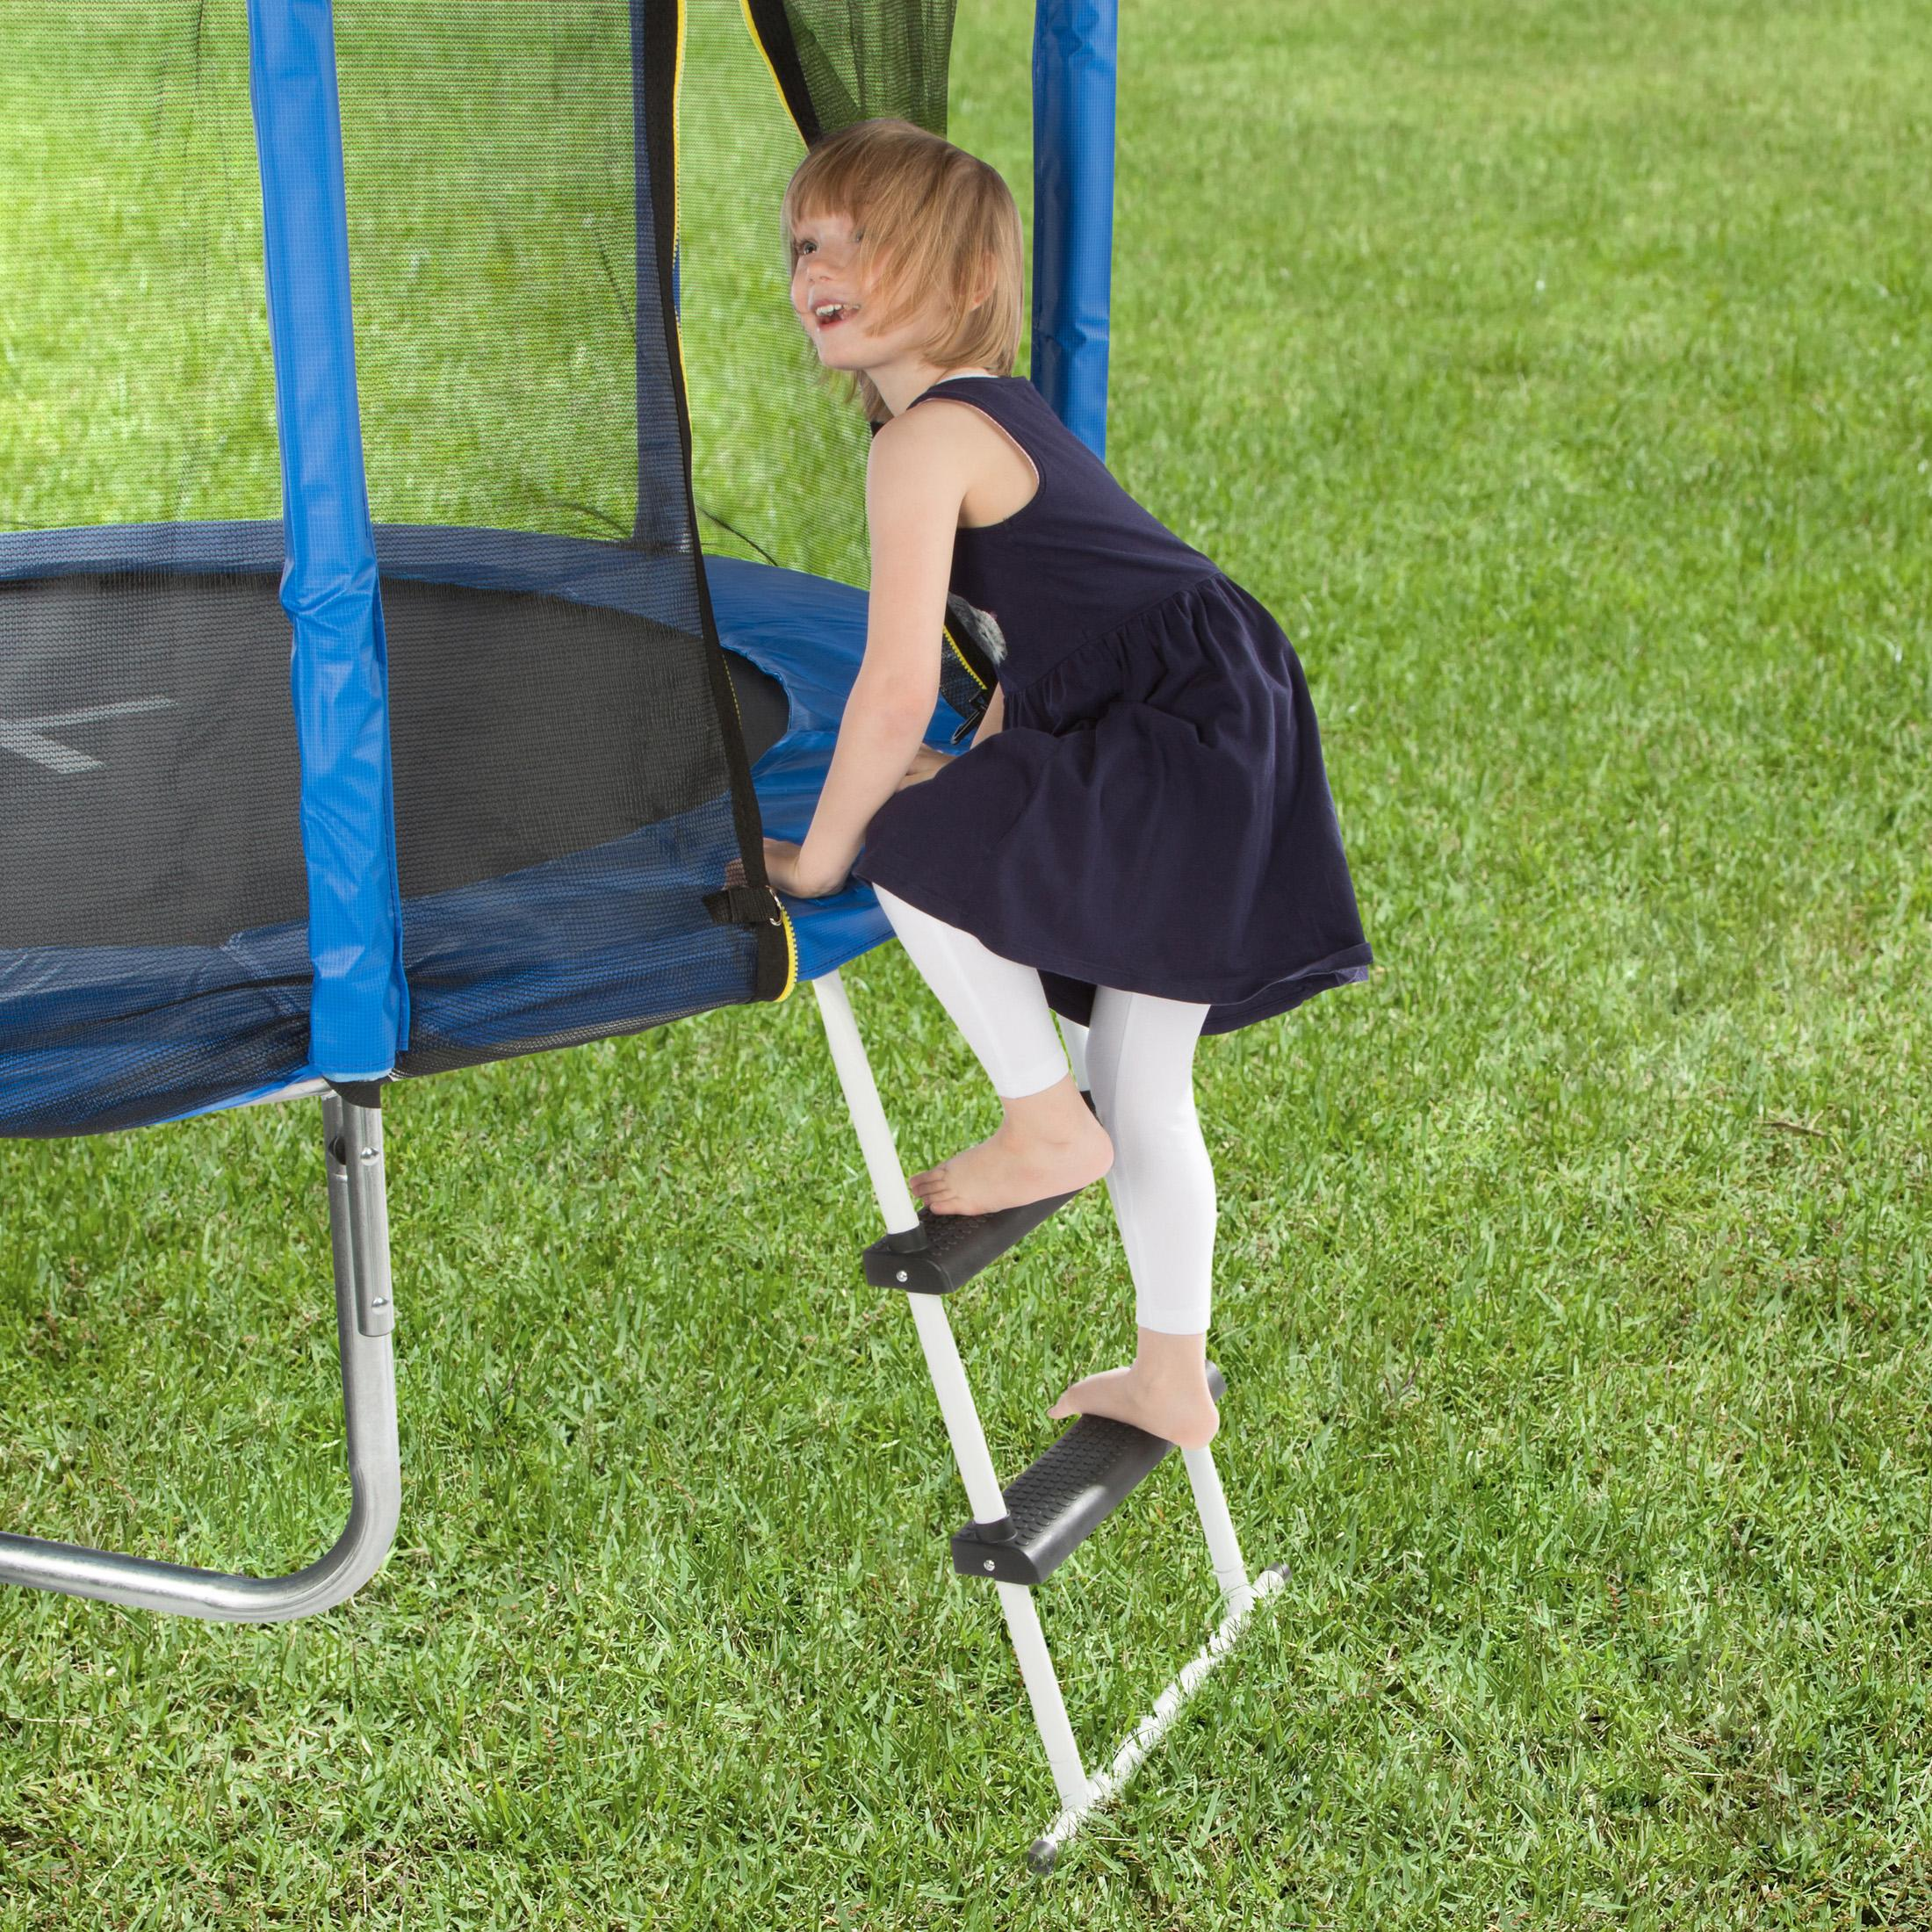 Amazon.com : Ultega Trampoline Ladder With Ground Cross